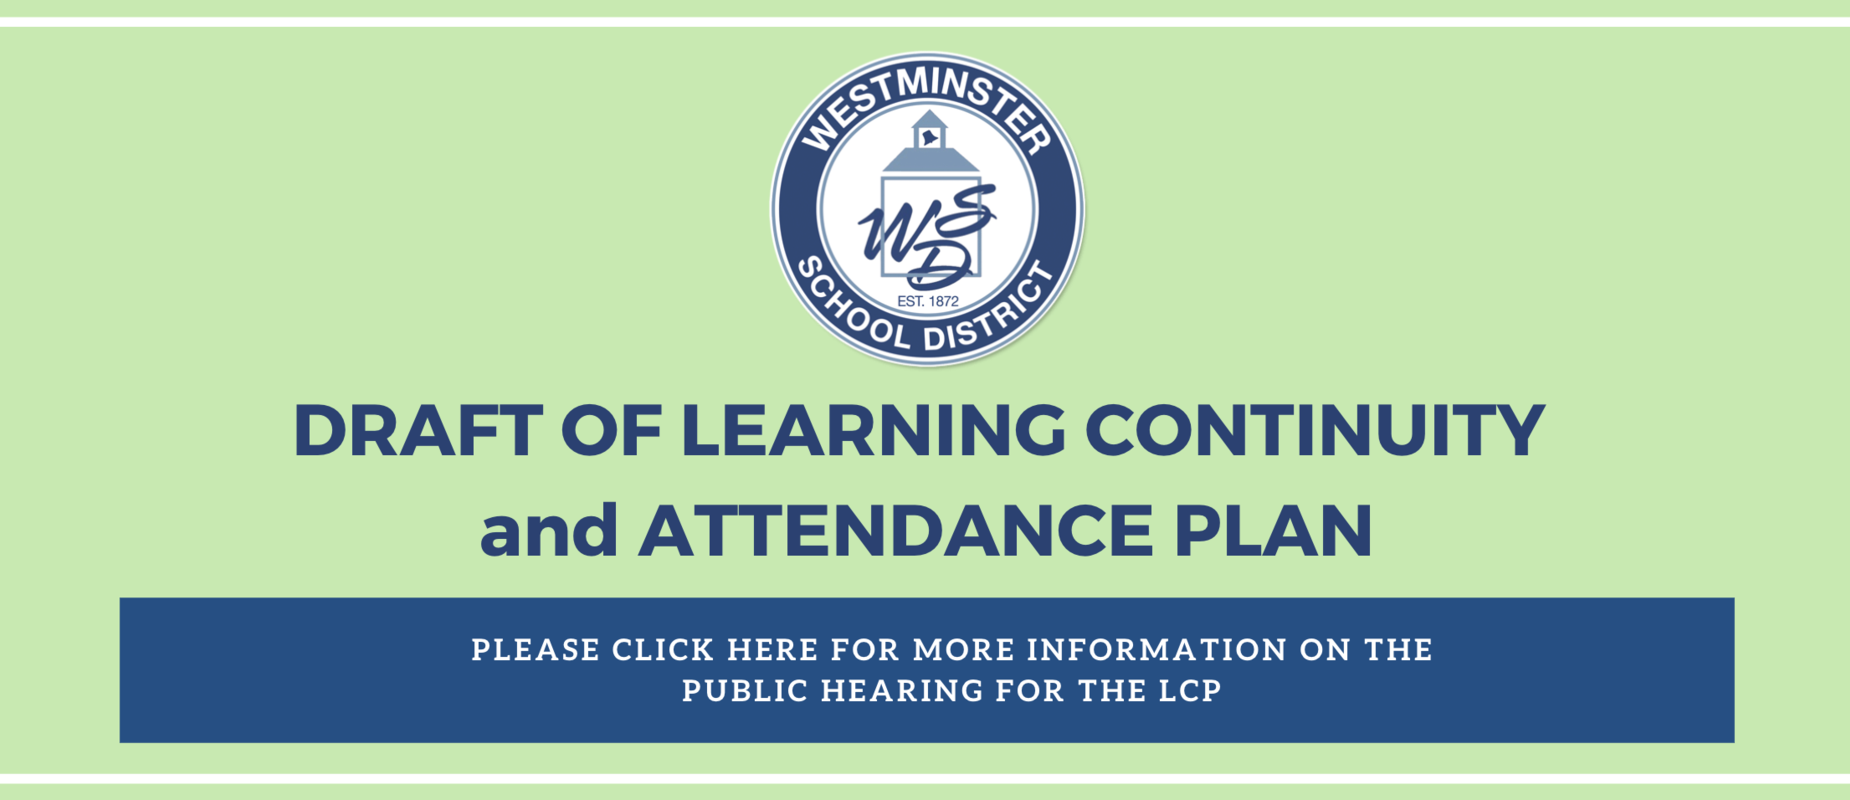 Draft of Learning Continuity and Attendance Plan, and invitation to Public Hearing